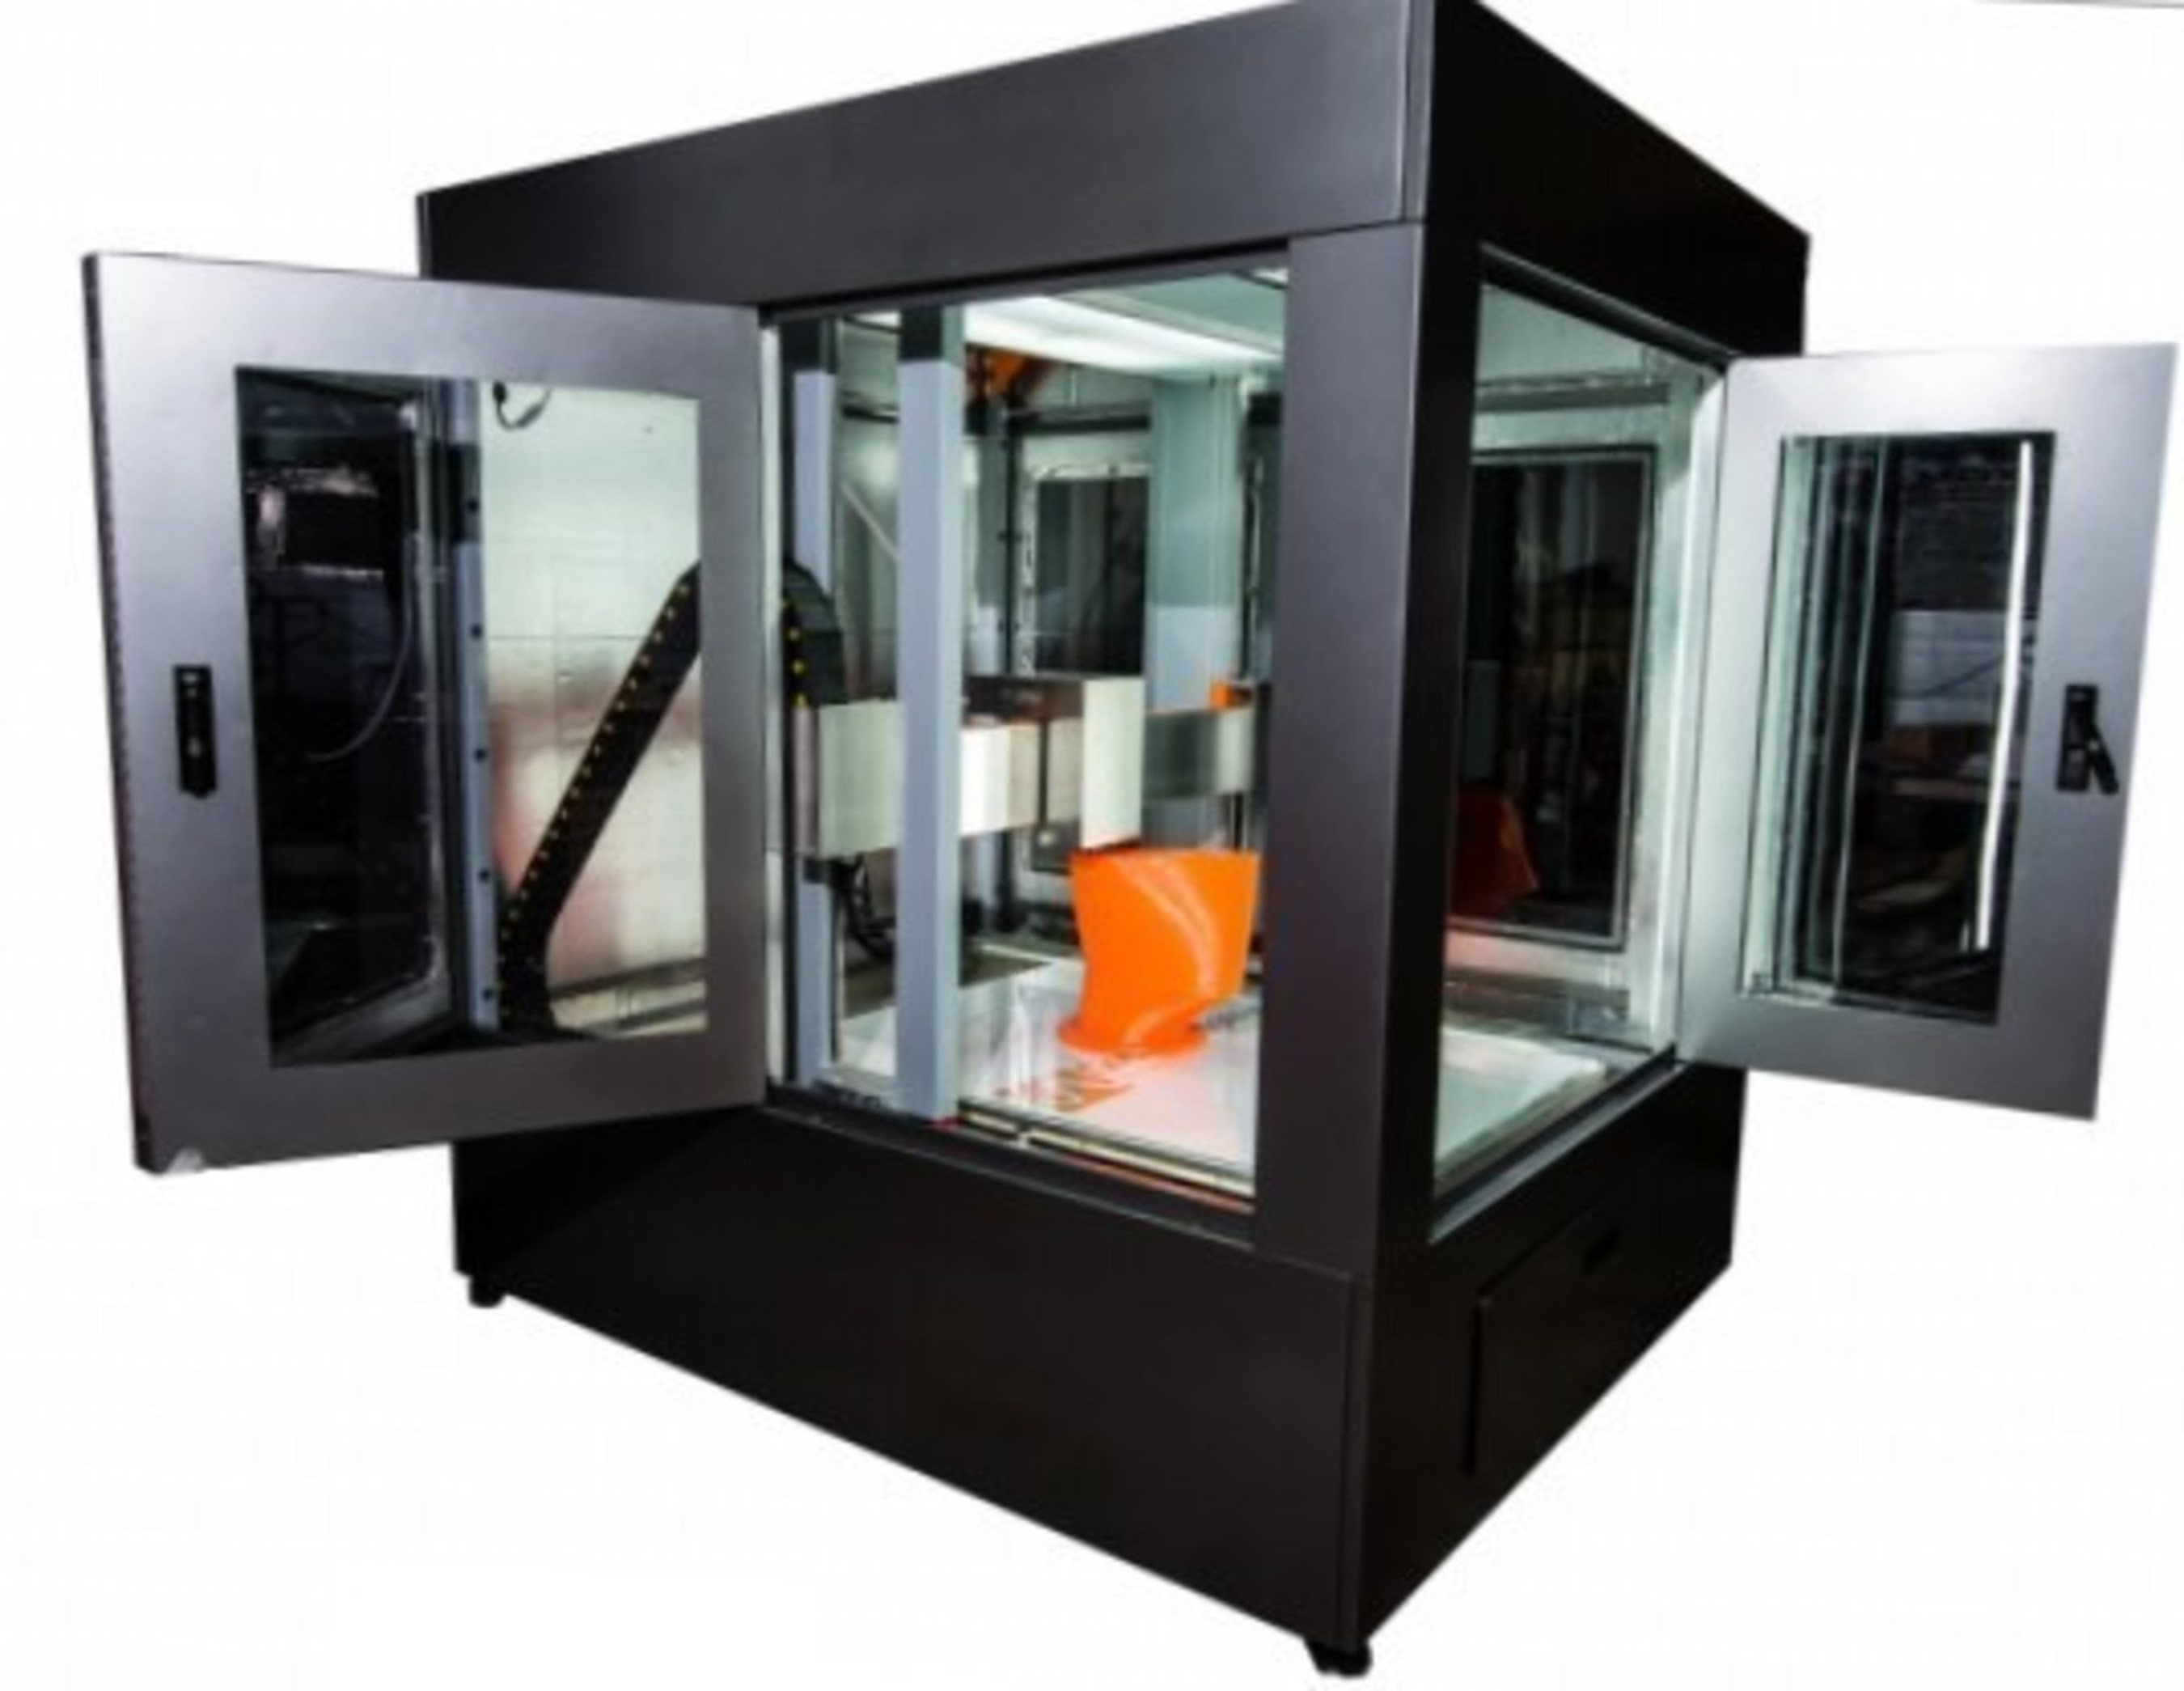 Cosine Additive Announces Production Pricing of Their Ultra-Large Format 3D Printer, the AM1